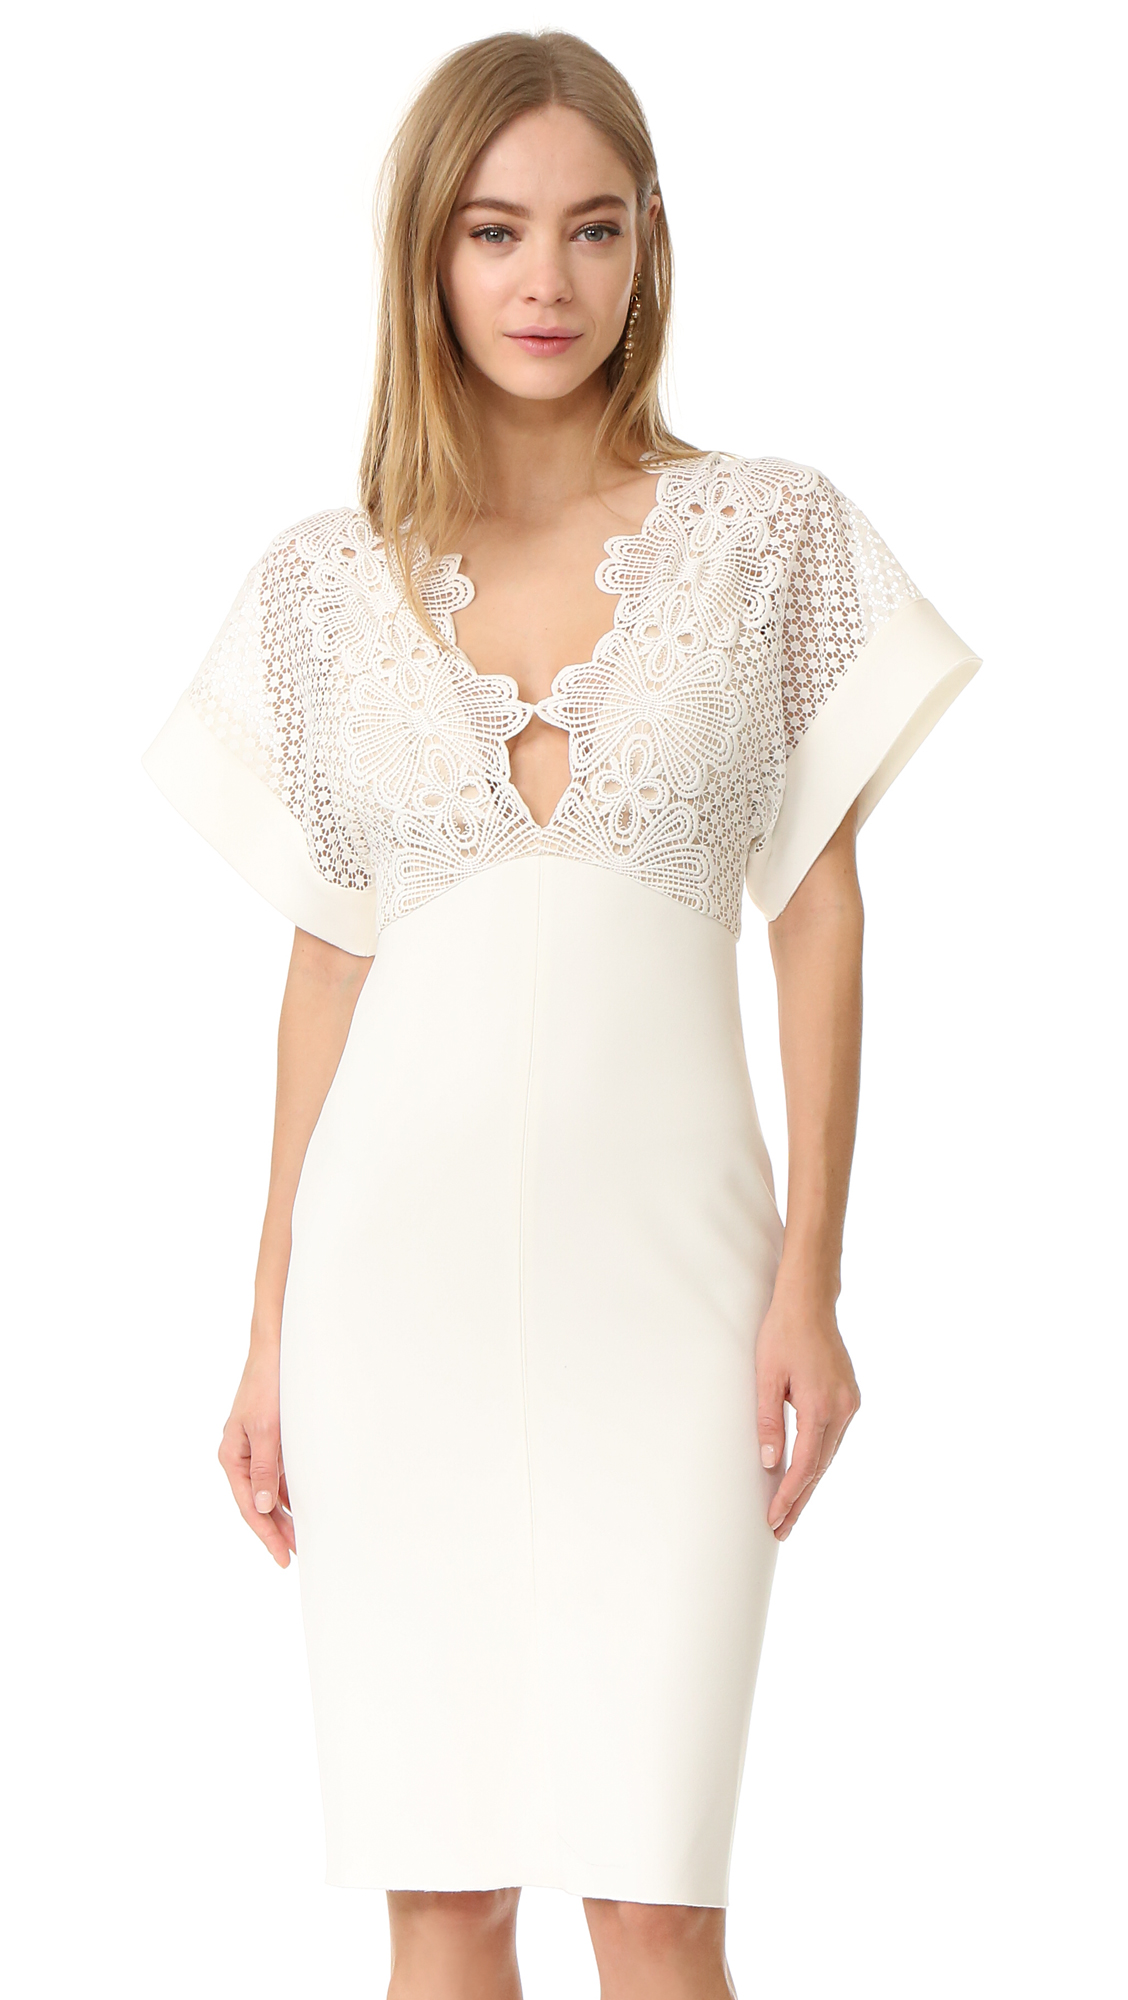 Lover Camelia Bonded Midi Dress - White